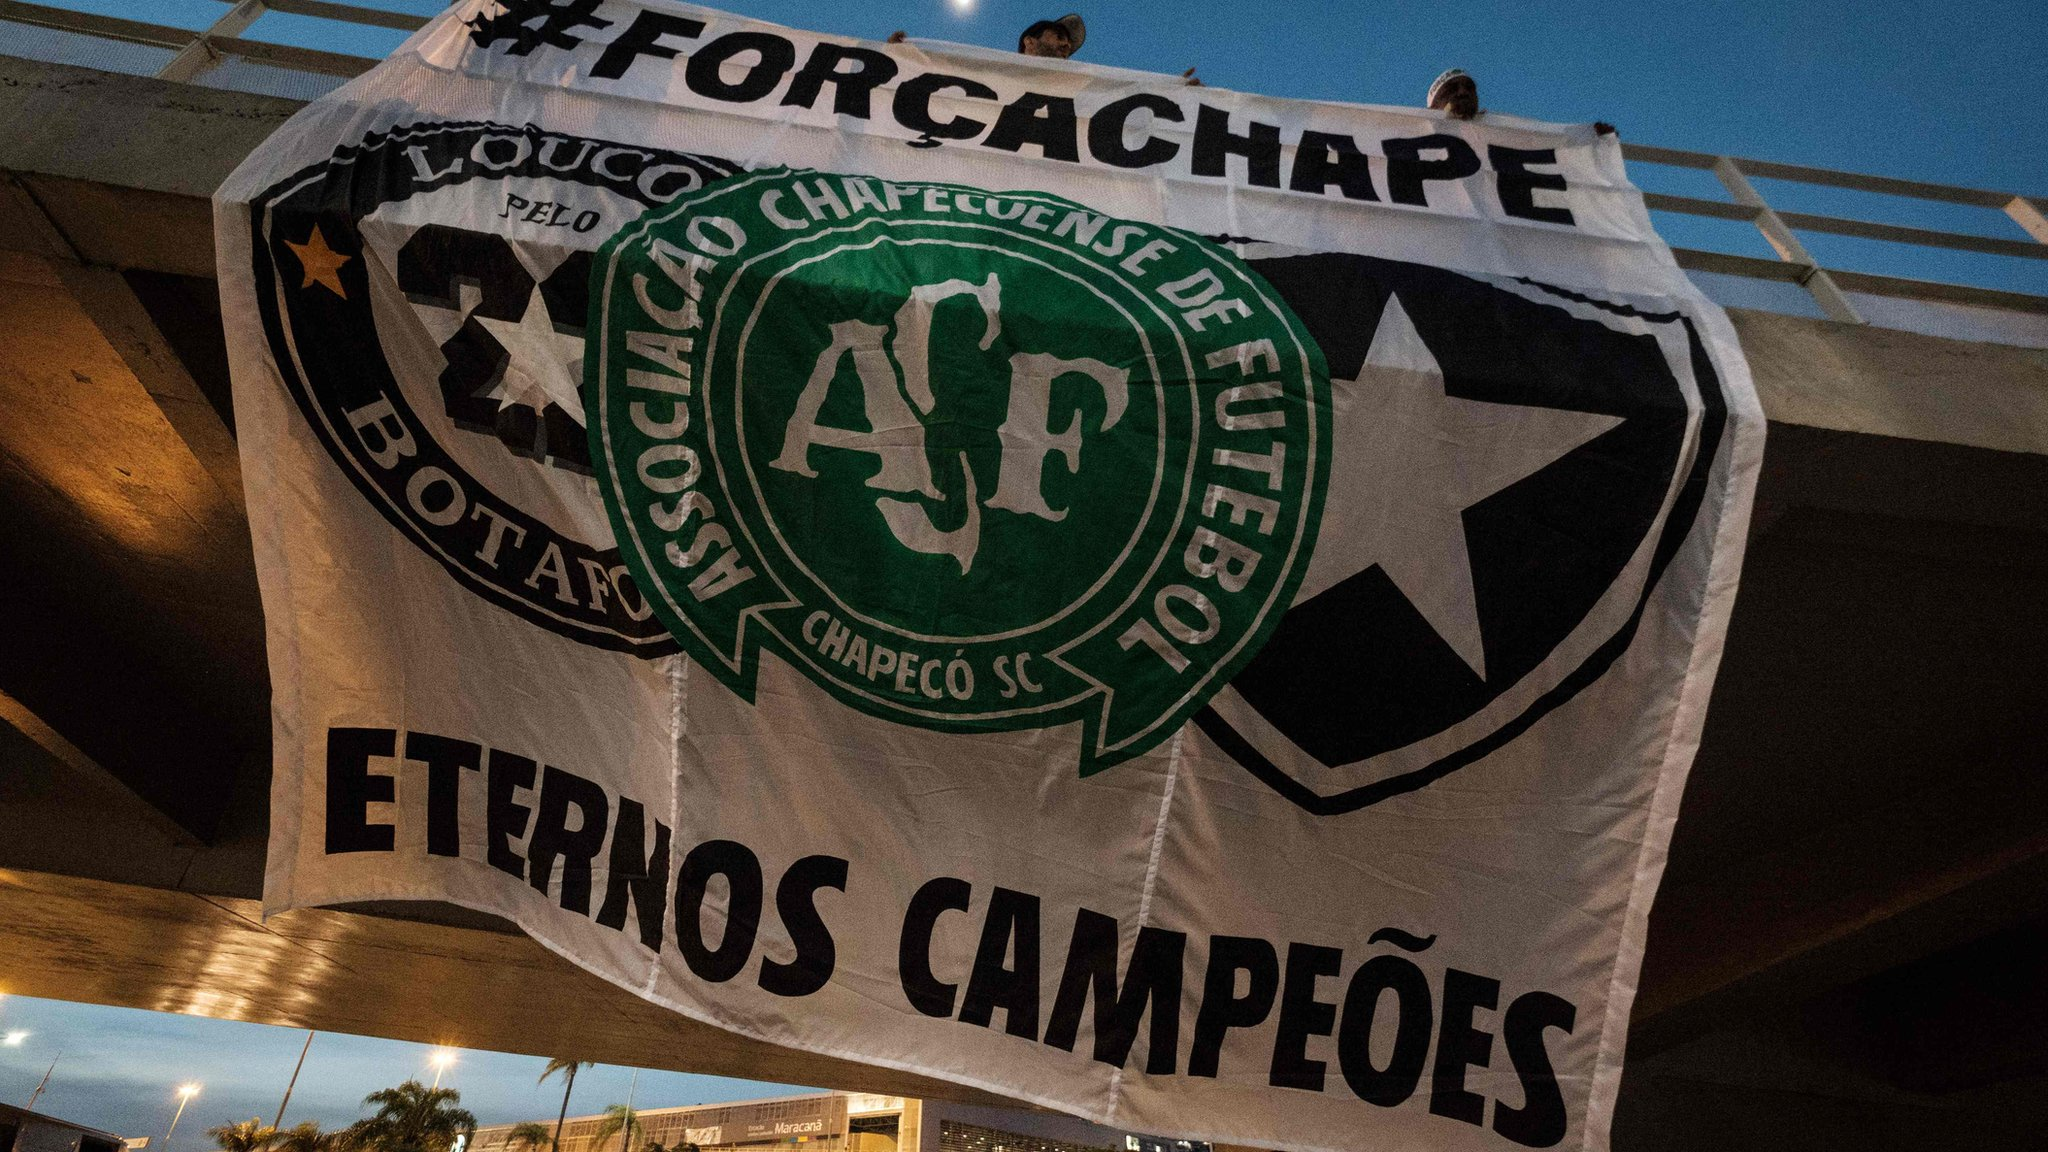 'We will help you reconstruct your club' - Barca's offer to Chapecoense